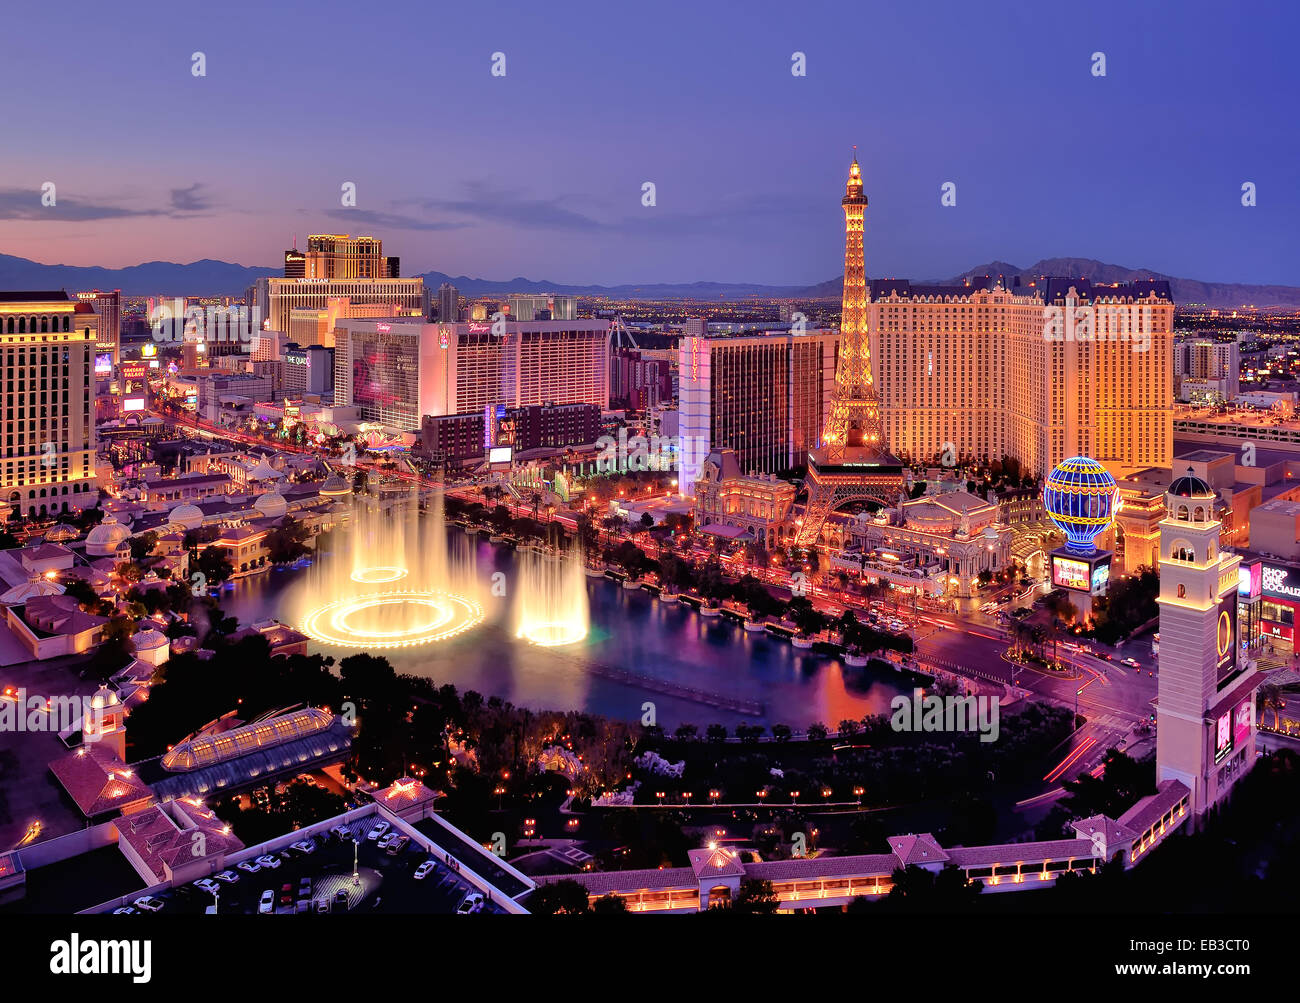 City skyline at night with Bellagio Hotel water fountains, Las Vegas, Nevada, America, USA - Stock Image